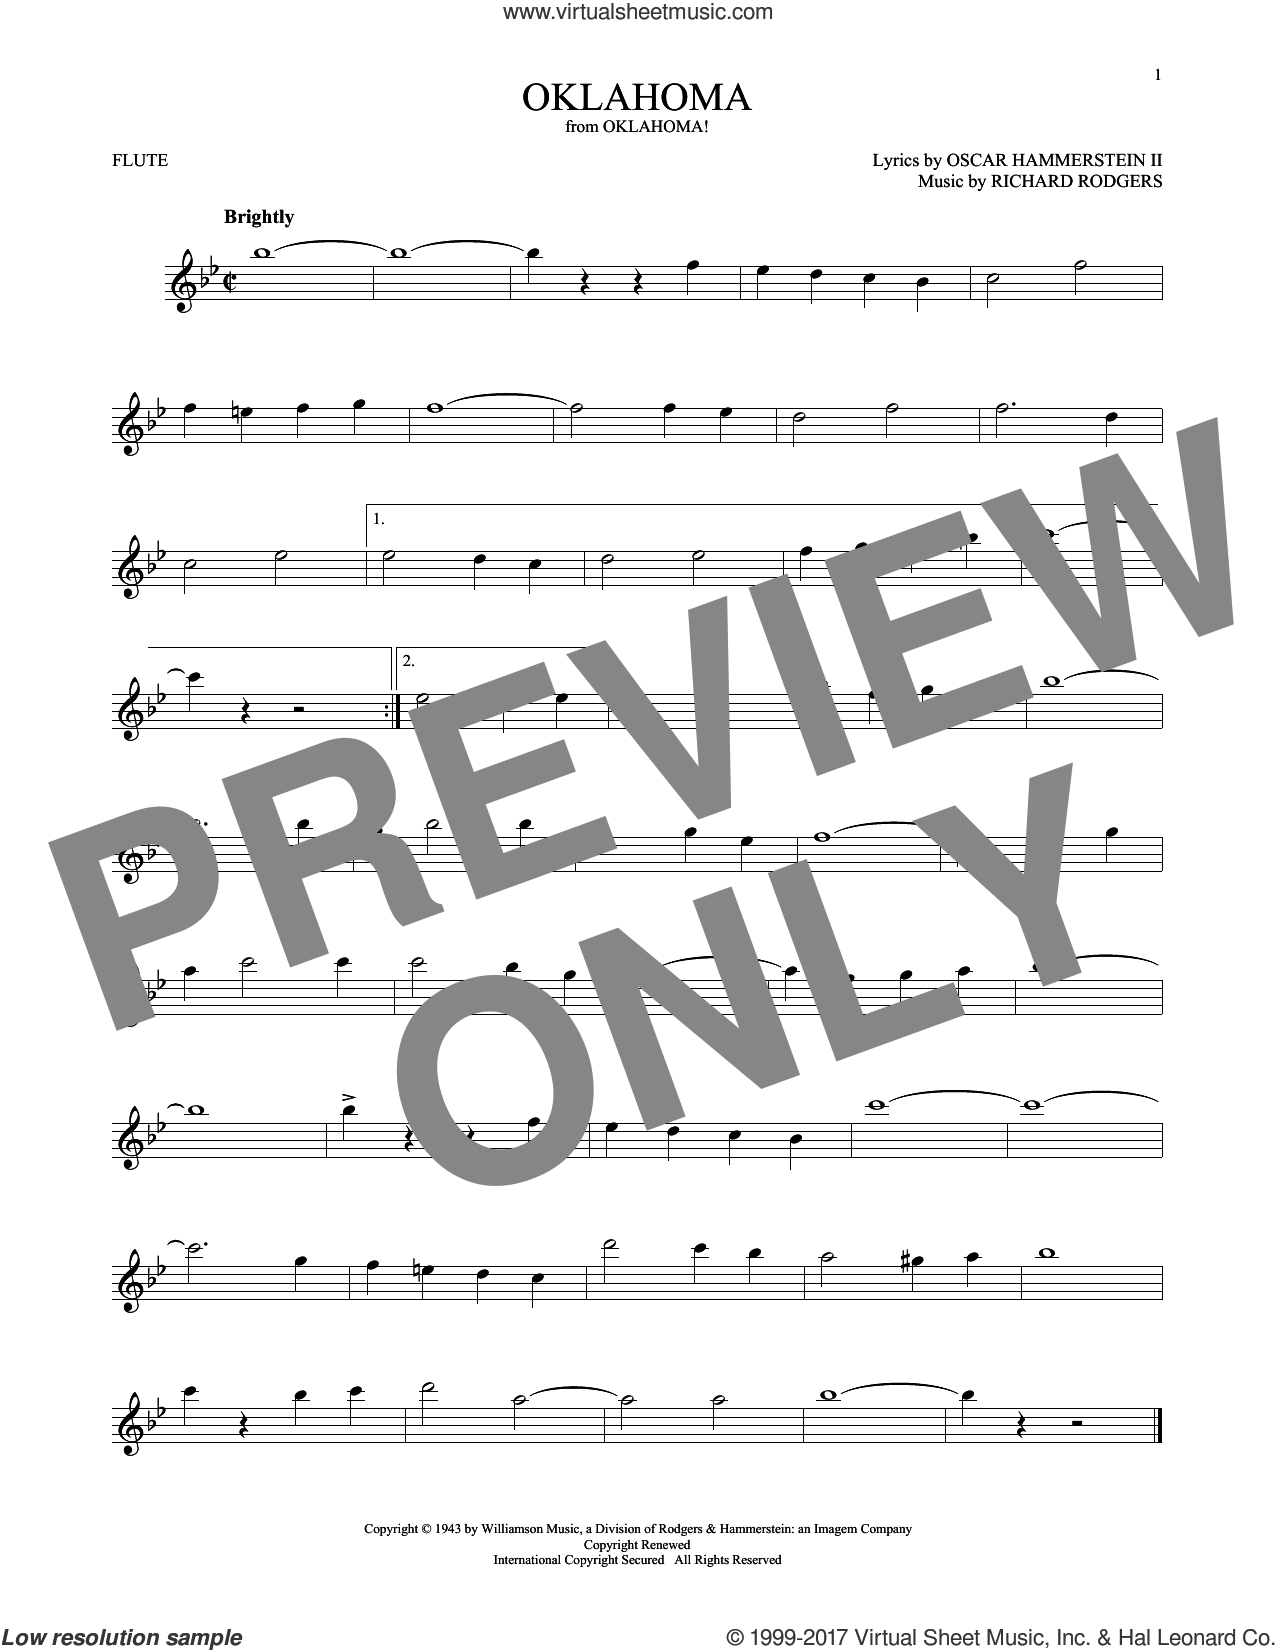 Oklahoma (from Oklahoma!) sheet music for flute solo by Rodgers & Hammerstein, Oscar II Hammerstein and Richard Rodgers, intermediate skill level